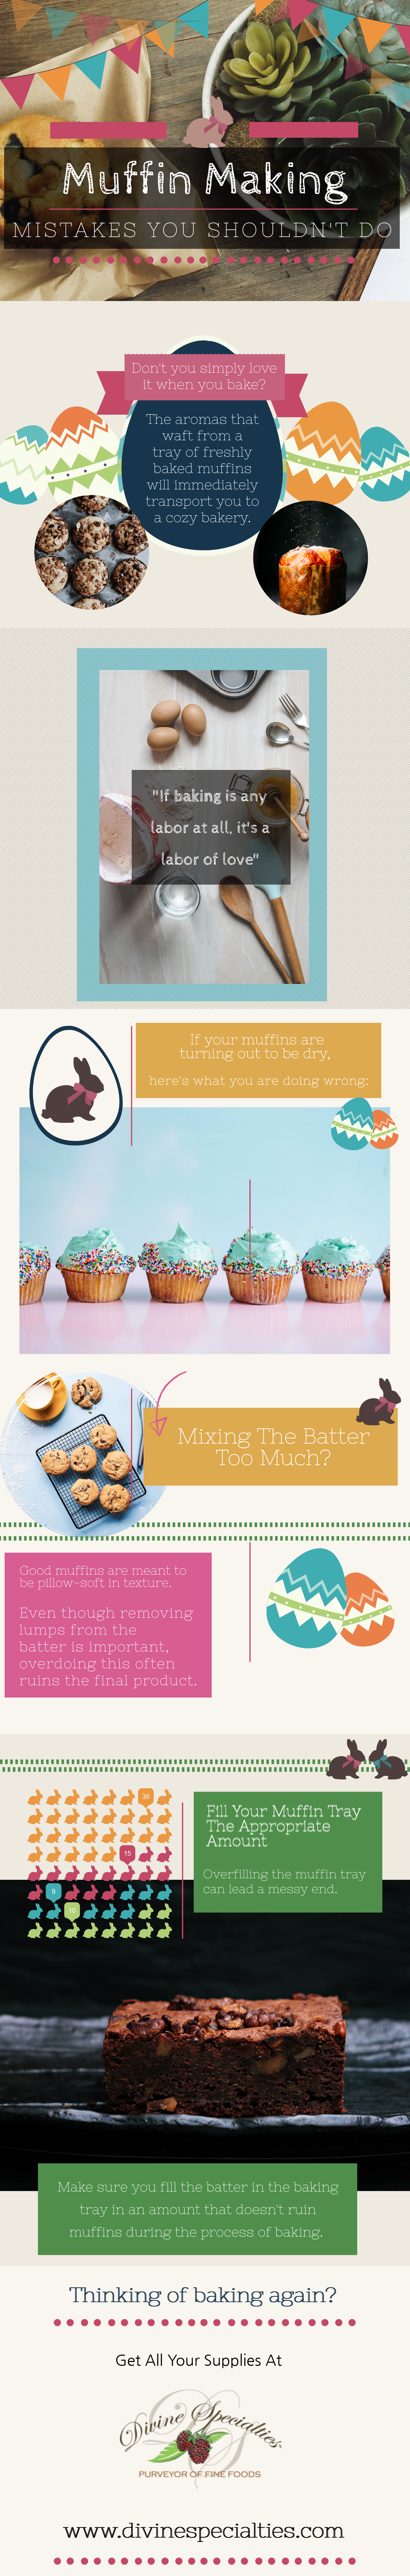 Muffin Making Mistakes You Shouldn't Do